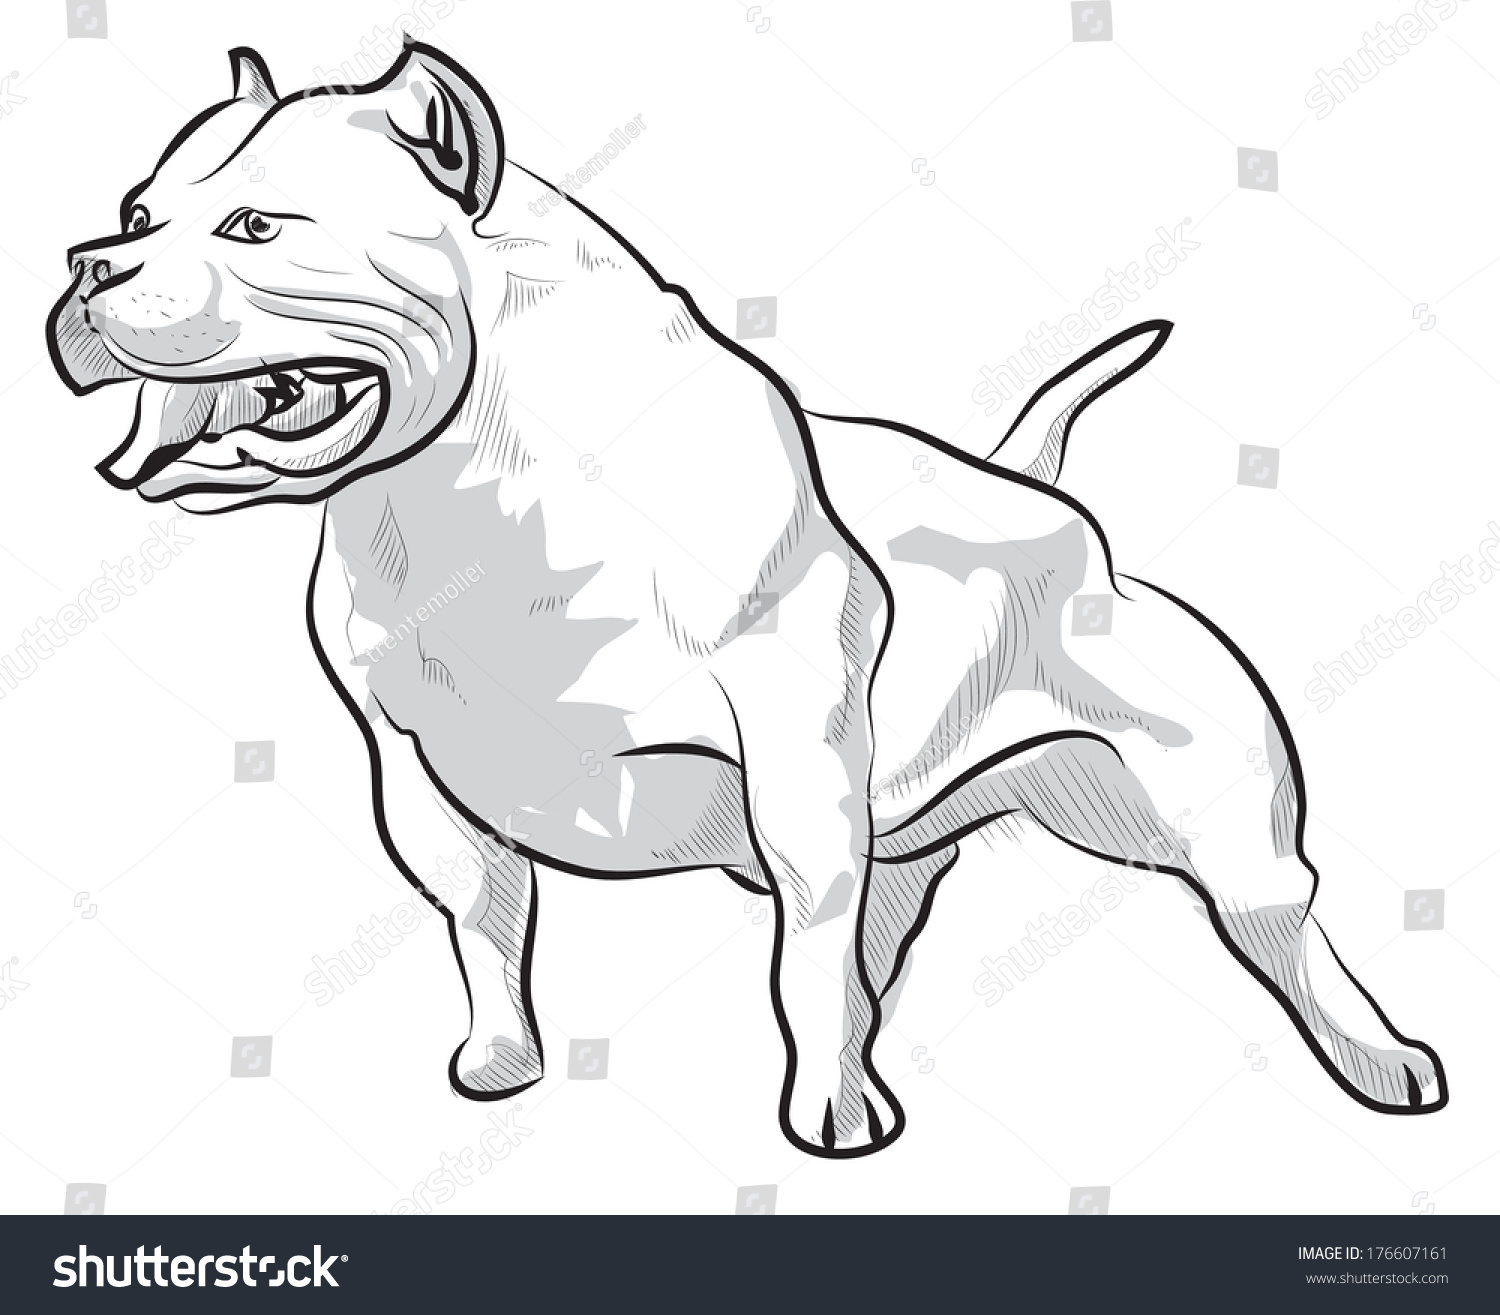 Uncategorized Drawing Pitbull vector sketch drawing pitbull barking stock 176607161 barking